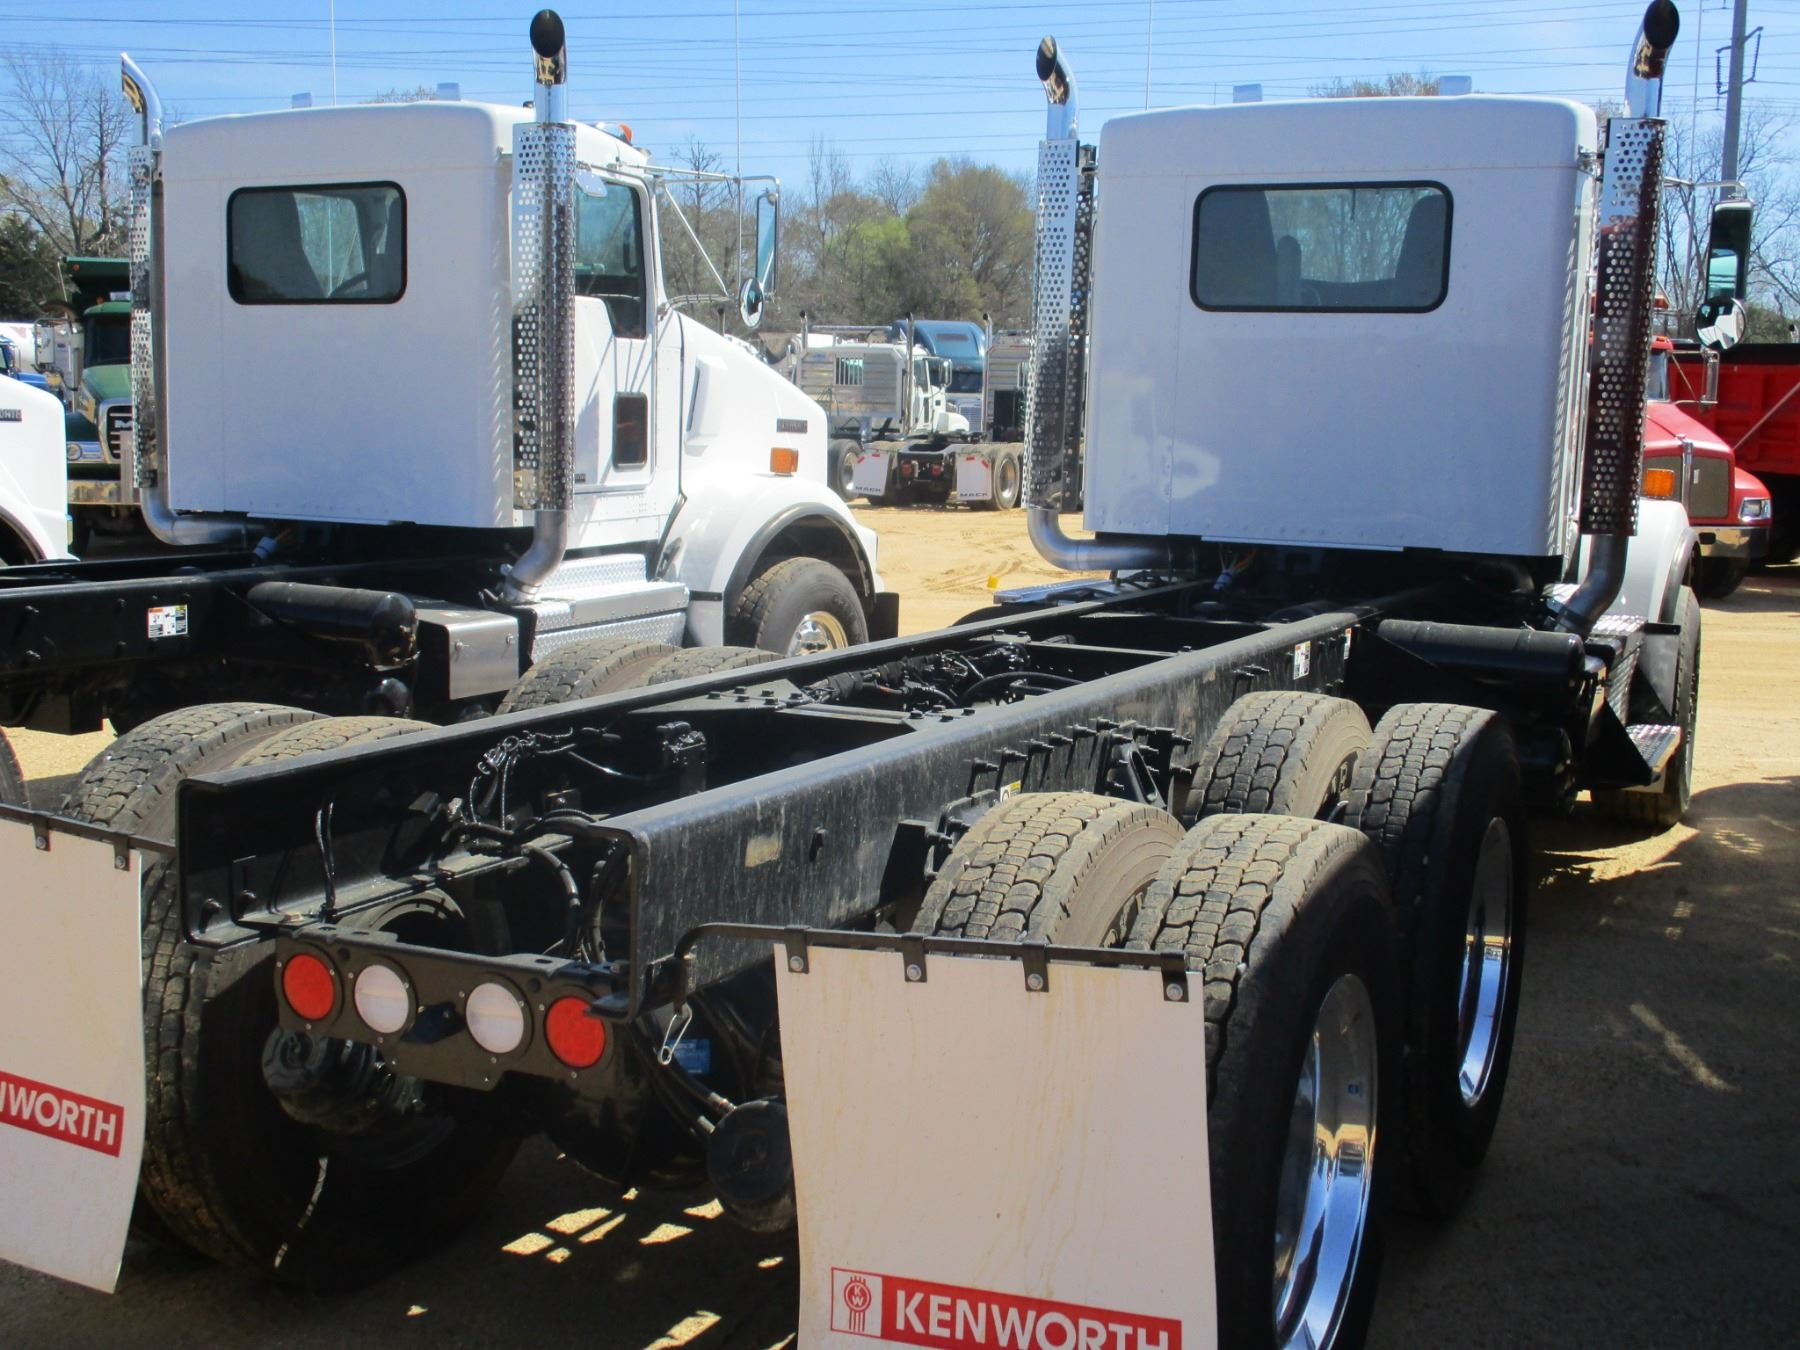 hight resolution of  image 3 2018 kenworth t800 cab chassis vin sn 1nkdl40xxjj205445